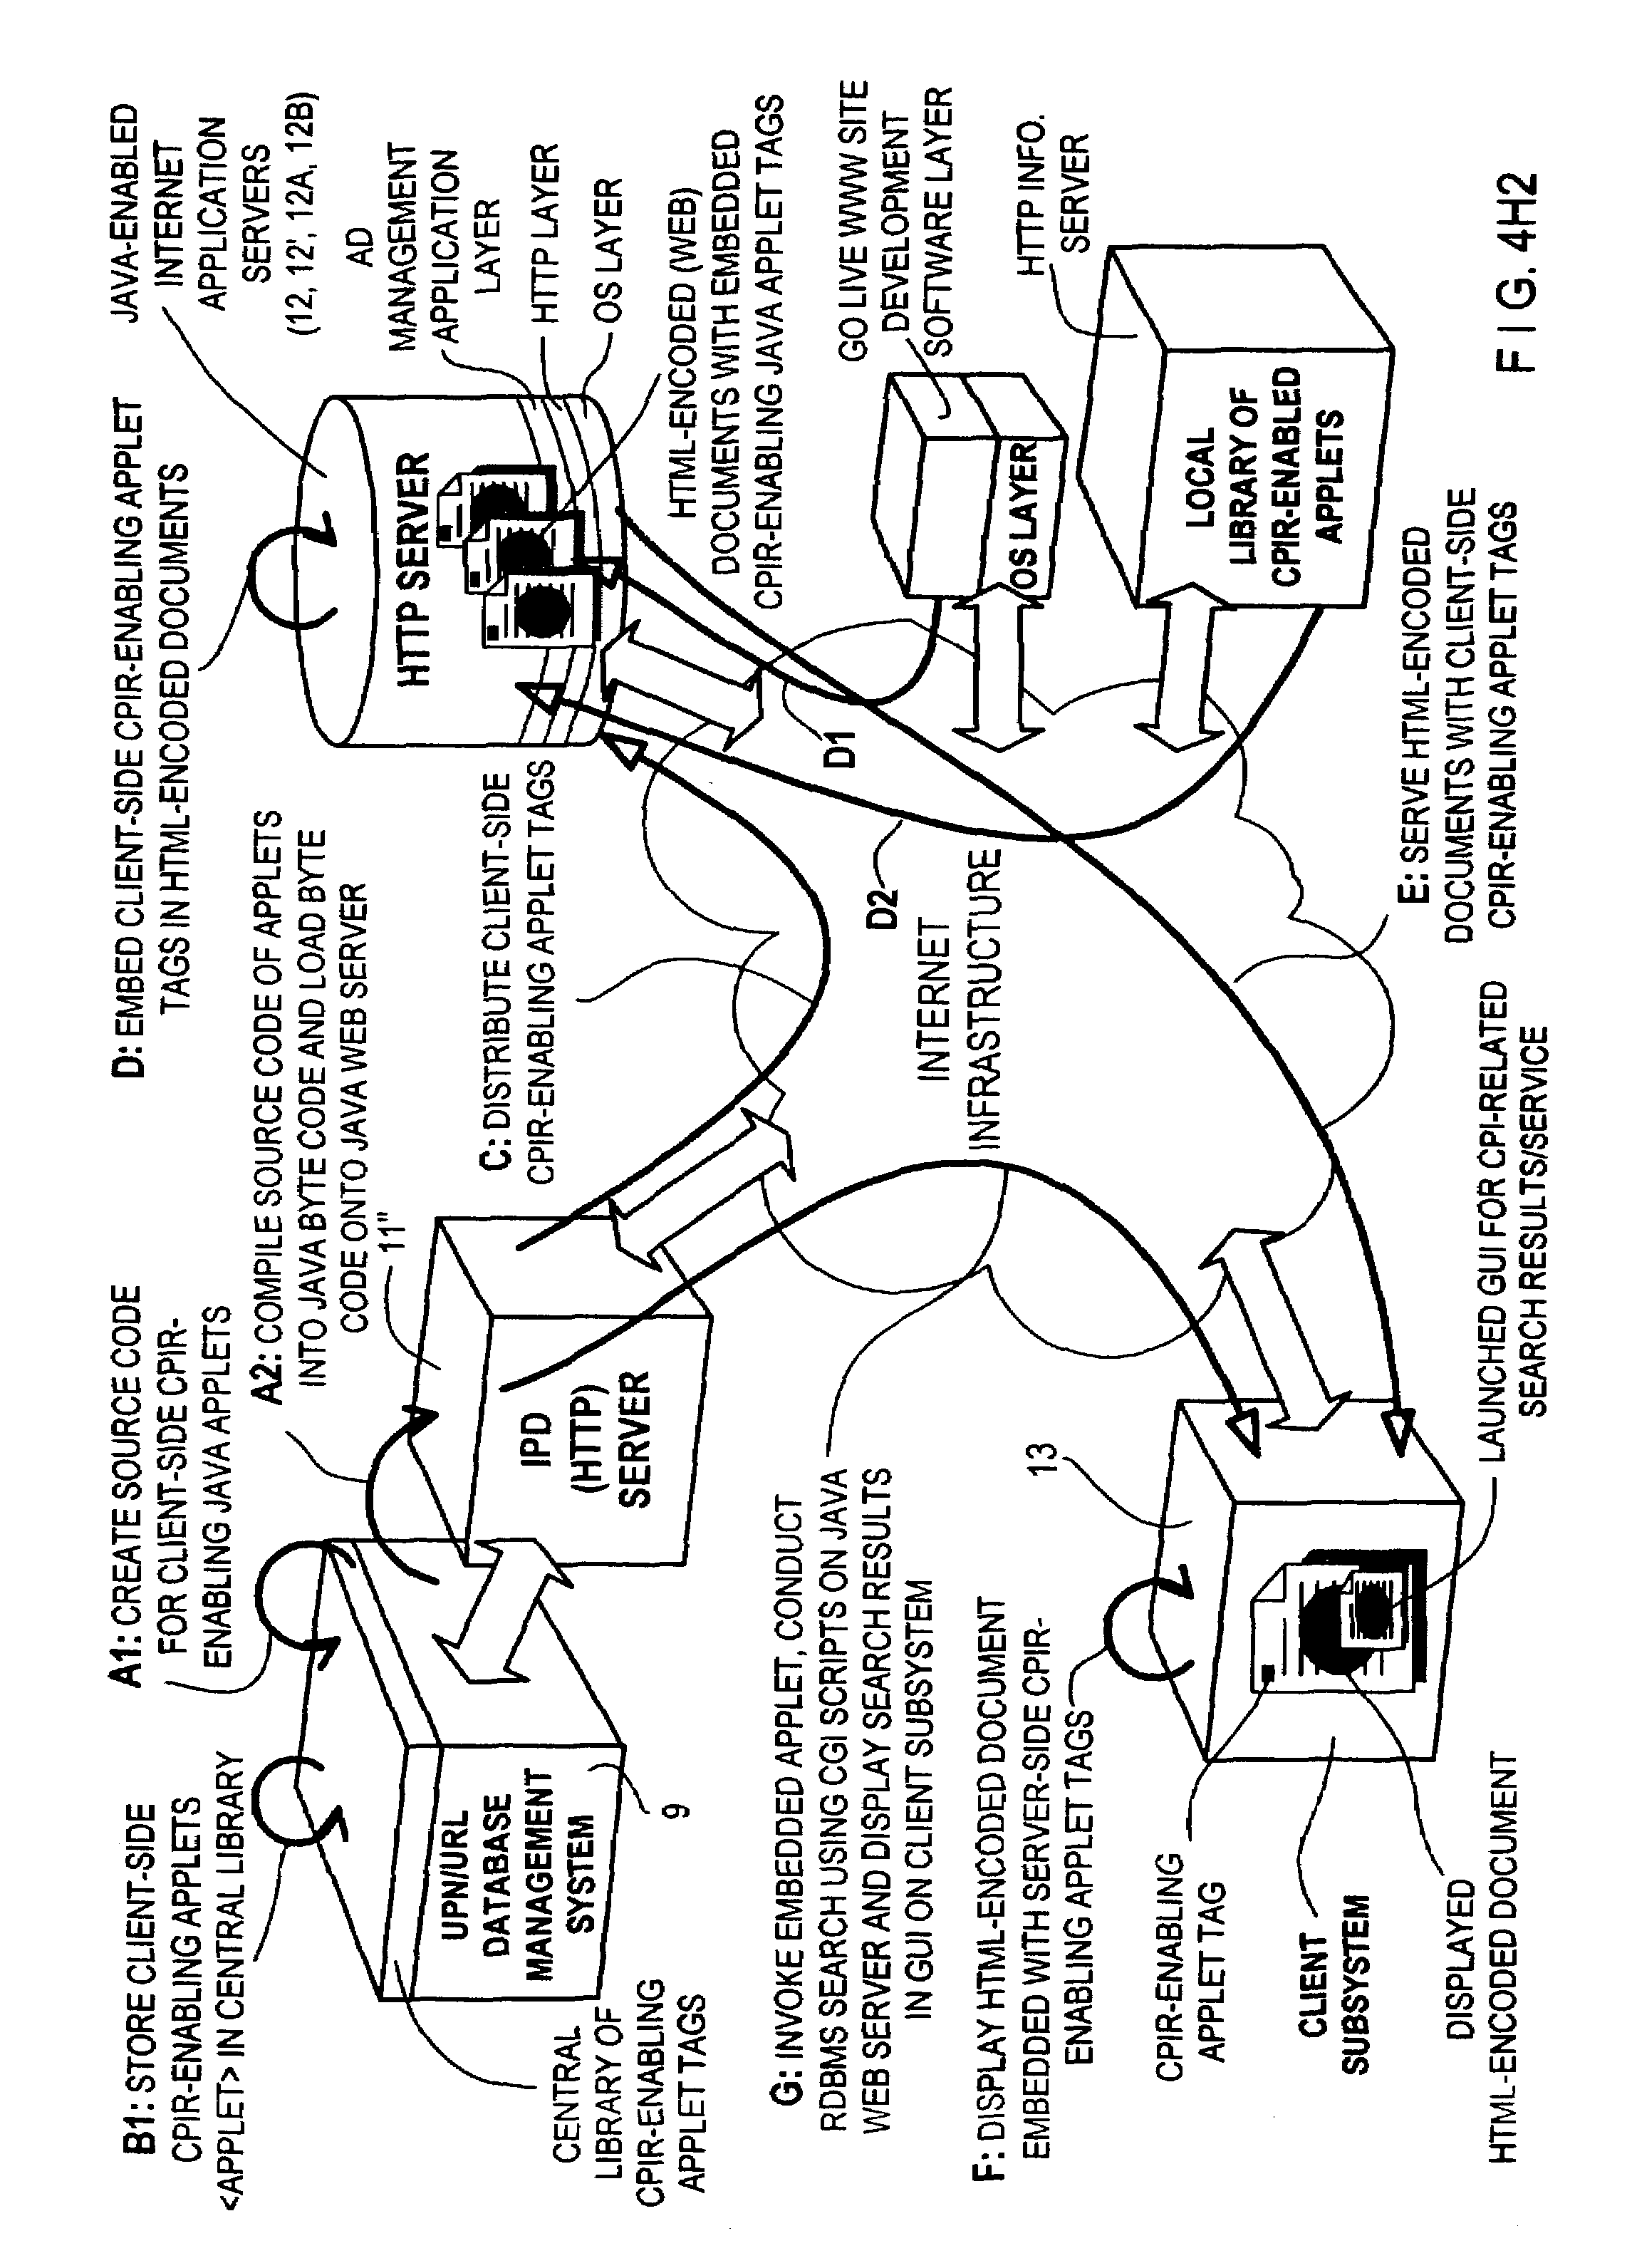 Patent Us 7516094 B2 Diagrams Archives Page 73 Of 301 Automotive Wiring Images